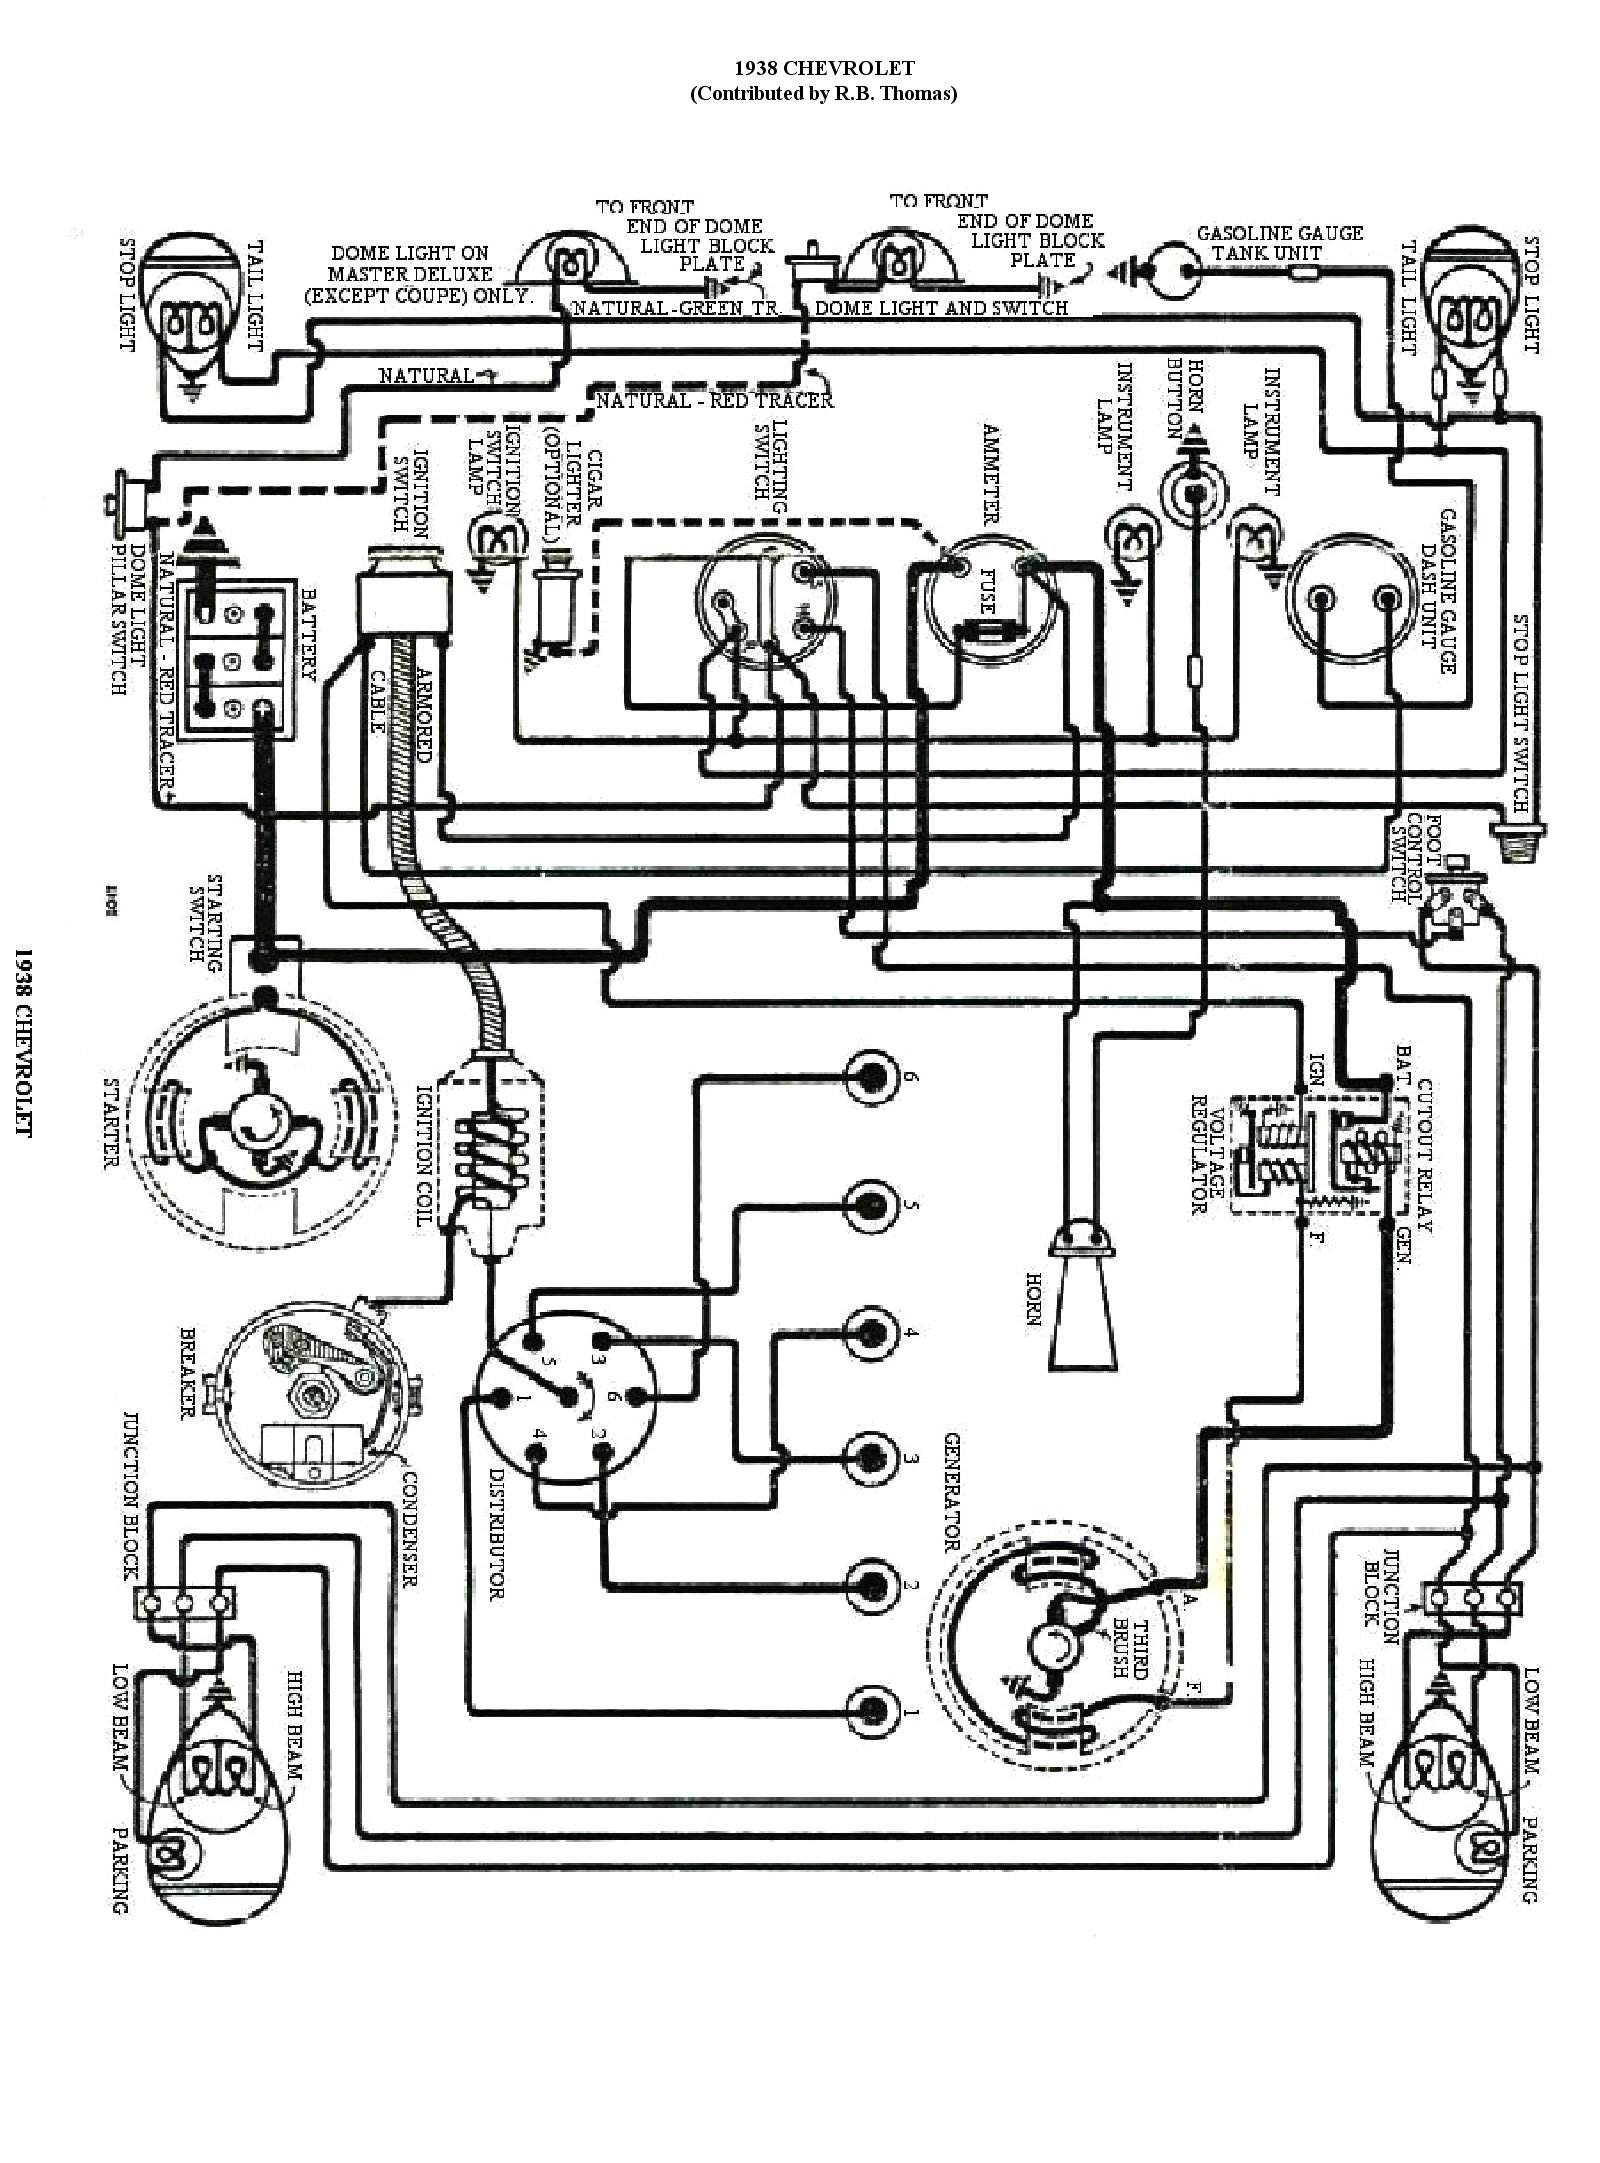 Ez Wiring Harness Diagram from getdrawings.com